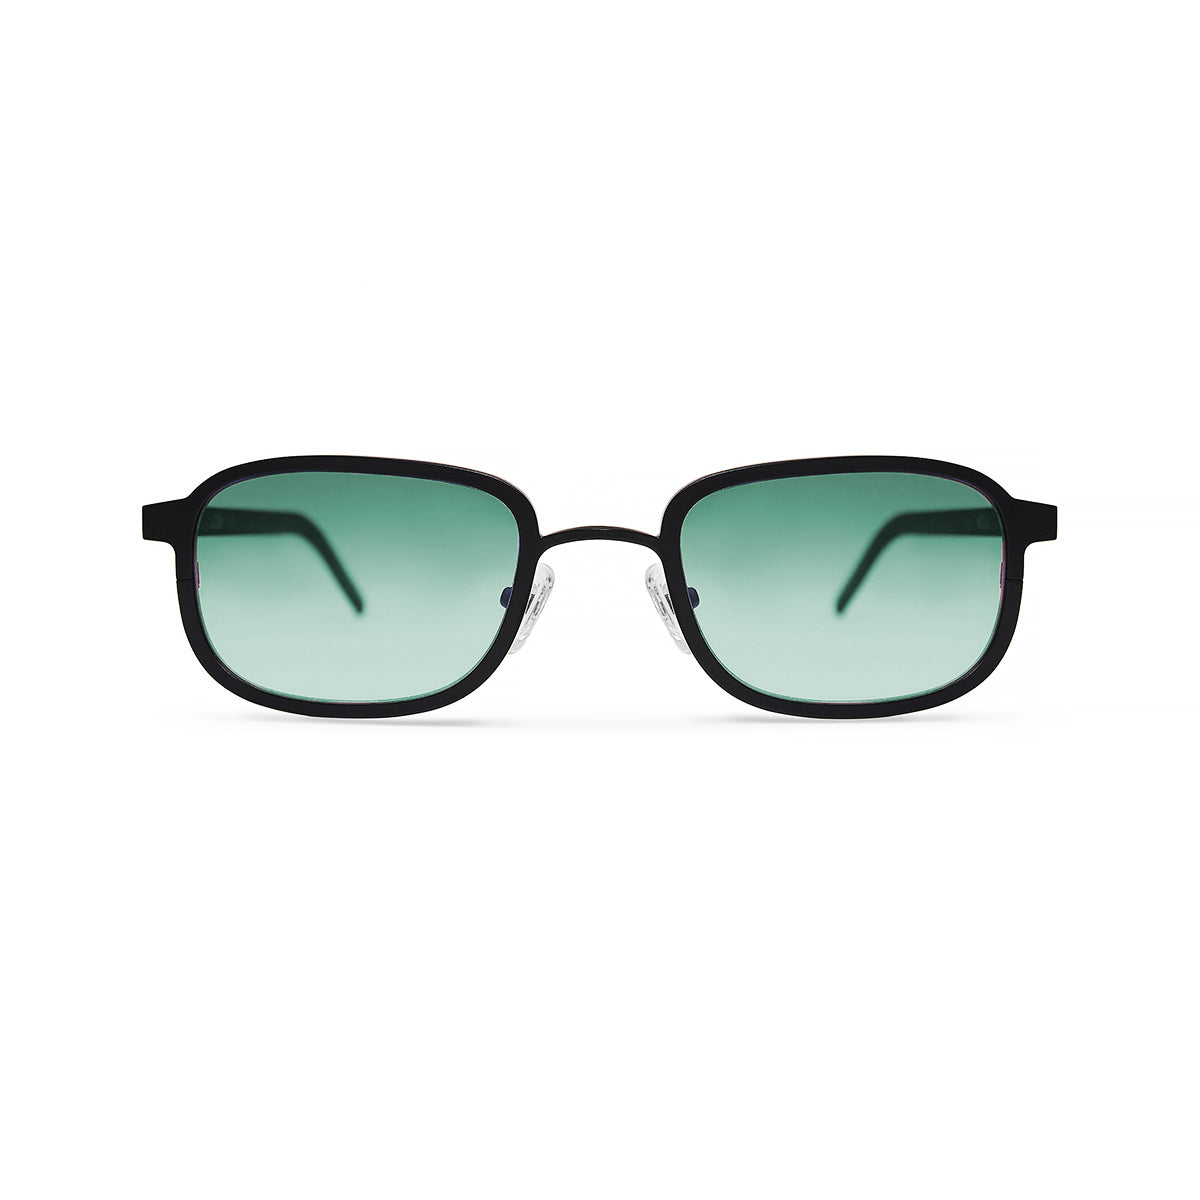 Metal / Horn. Matte Black / Dark. Jade Lens. - BLYSZAK eyewear eyewear - eyewear, optical, sunglasses